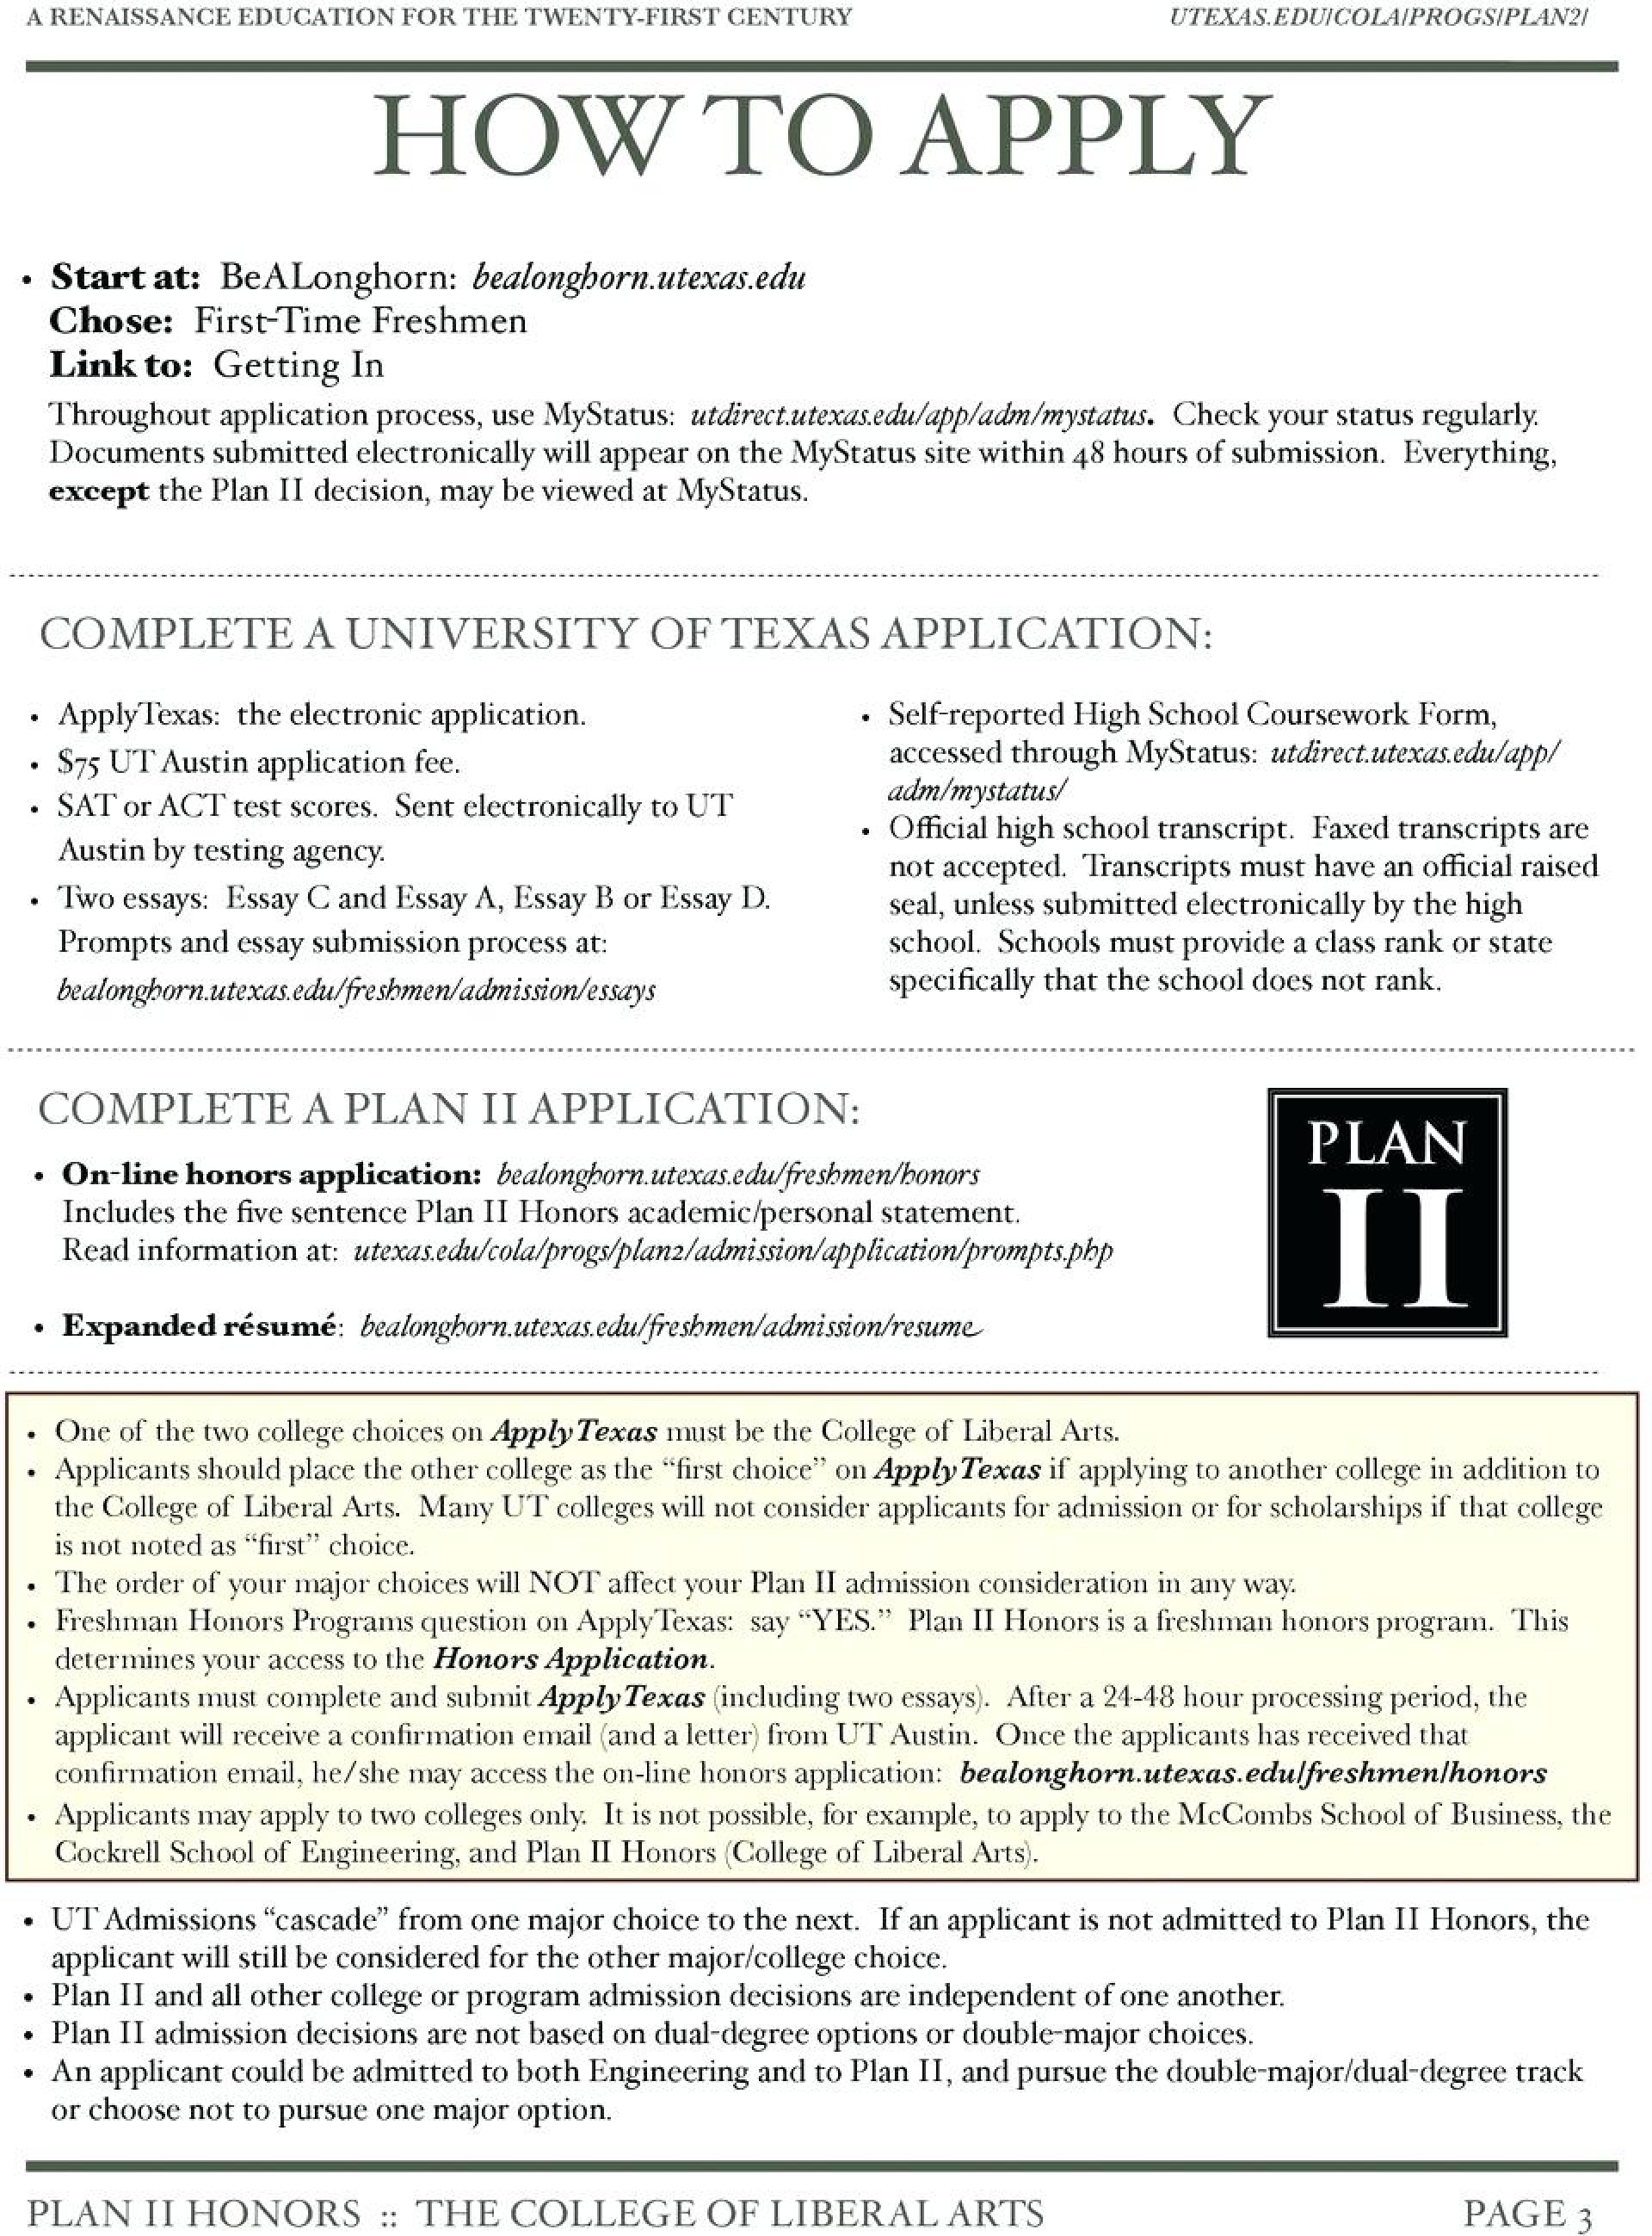 016 College Essay Requirements Example Application Examples Proess Quickplumber Us Apply Texas Require Outstanding Board 2017 Boston Sat Requirement 1920